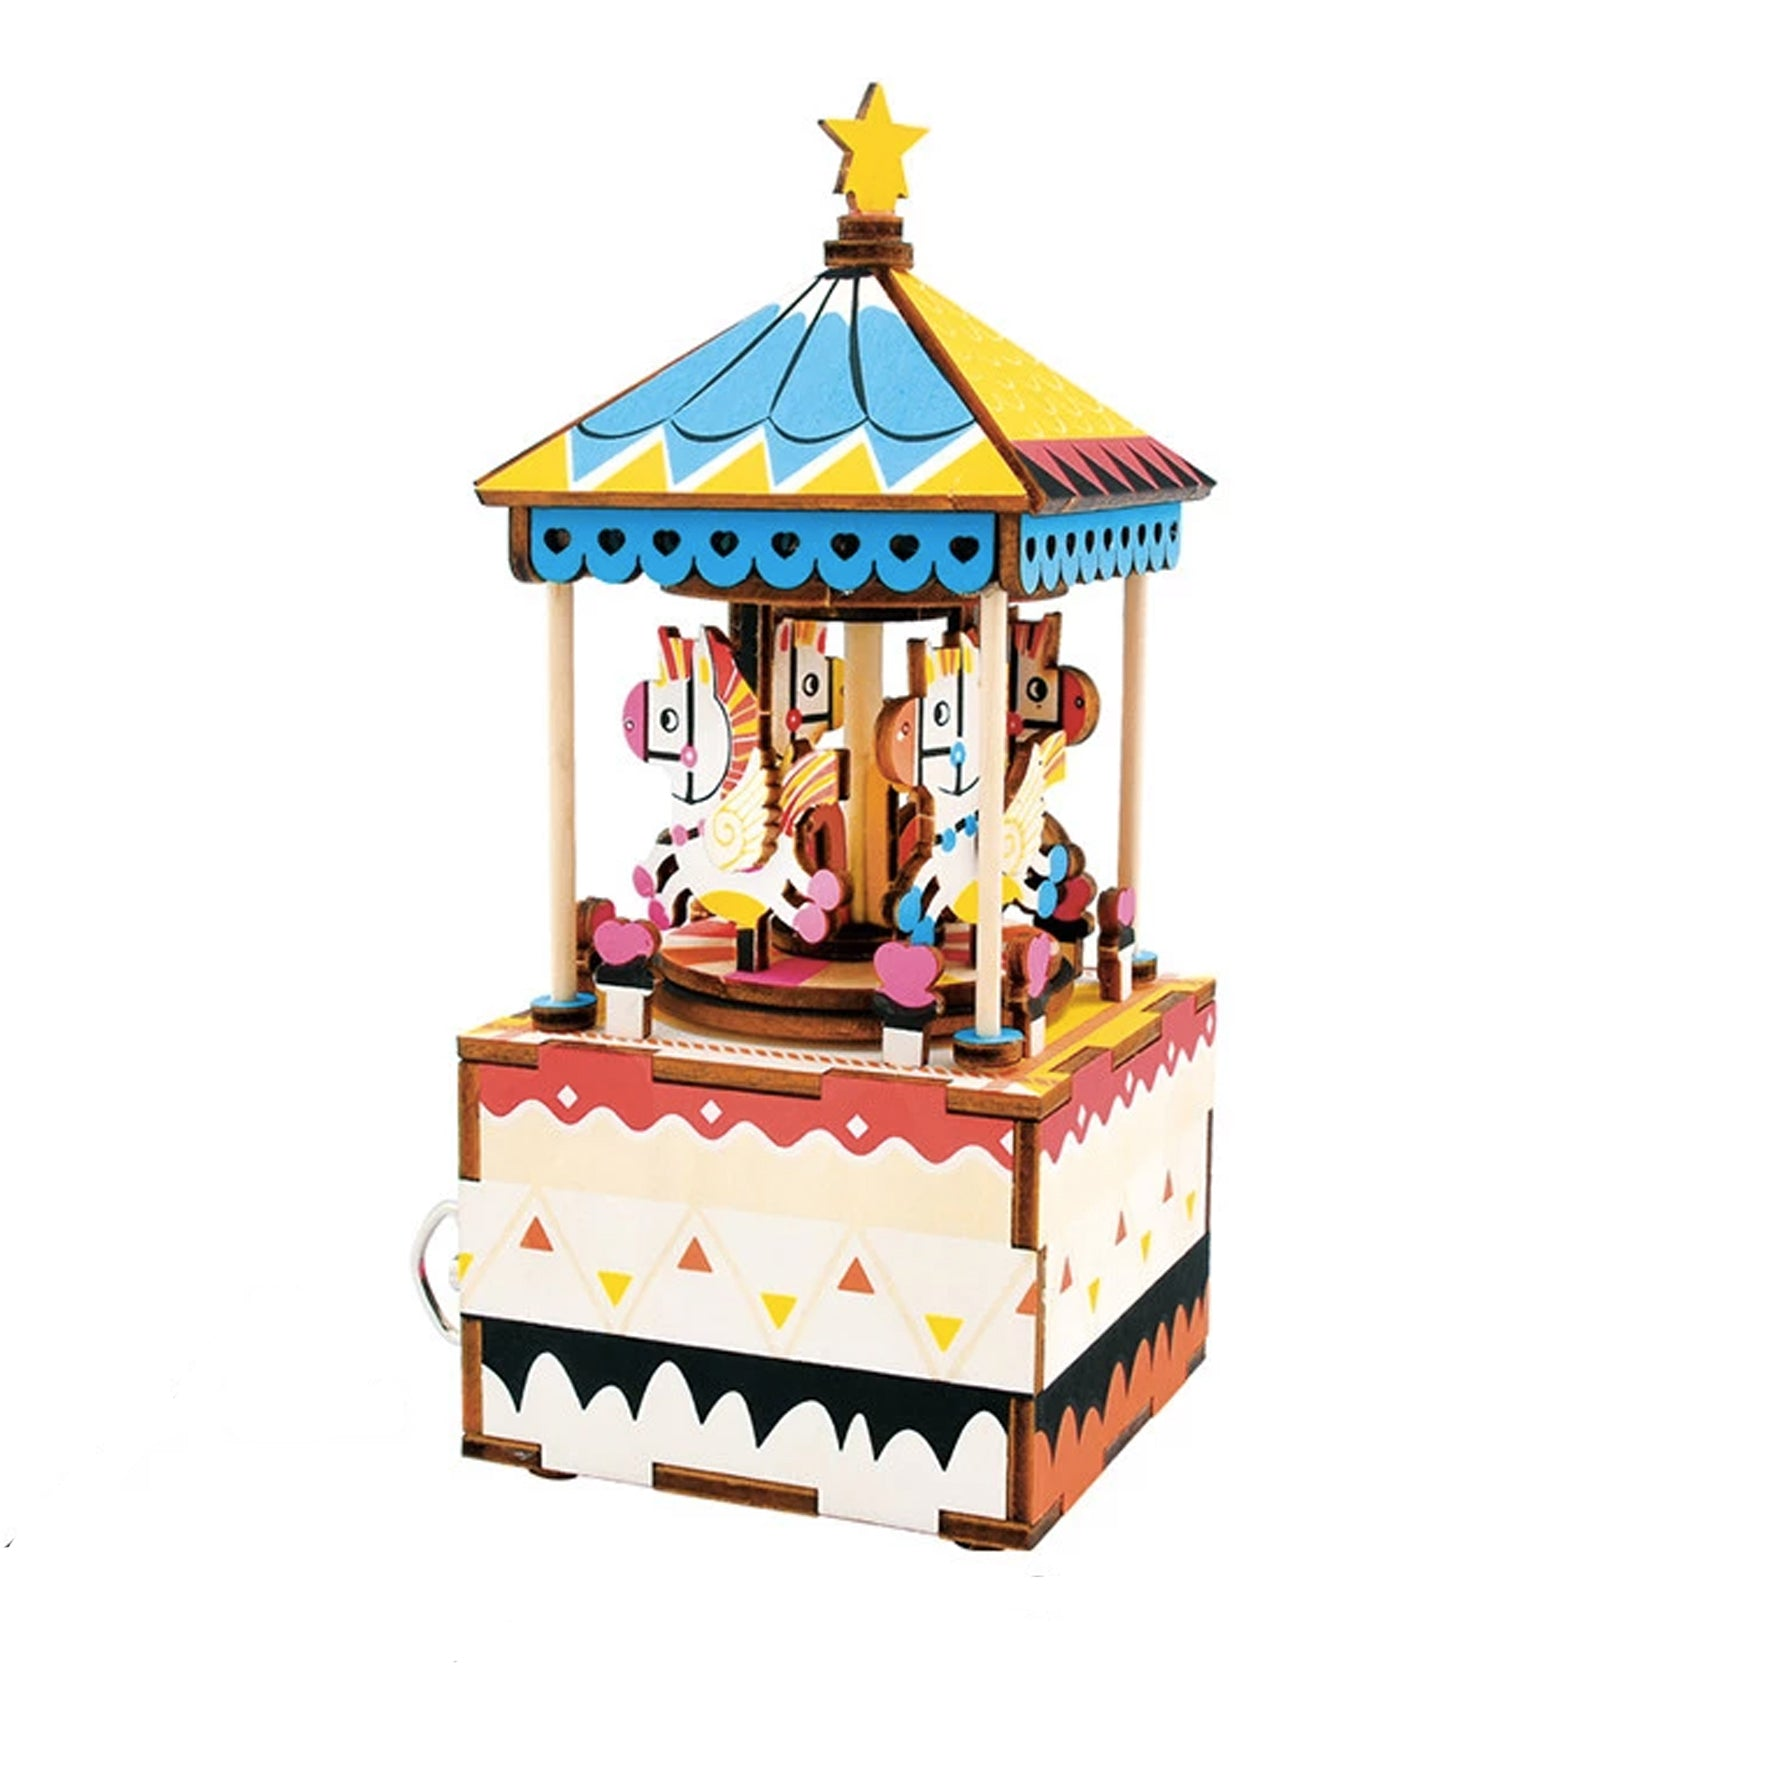 Puzzle 3D madera Robotime – Merry Go Round MB caja musical